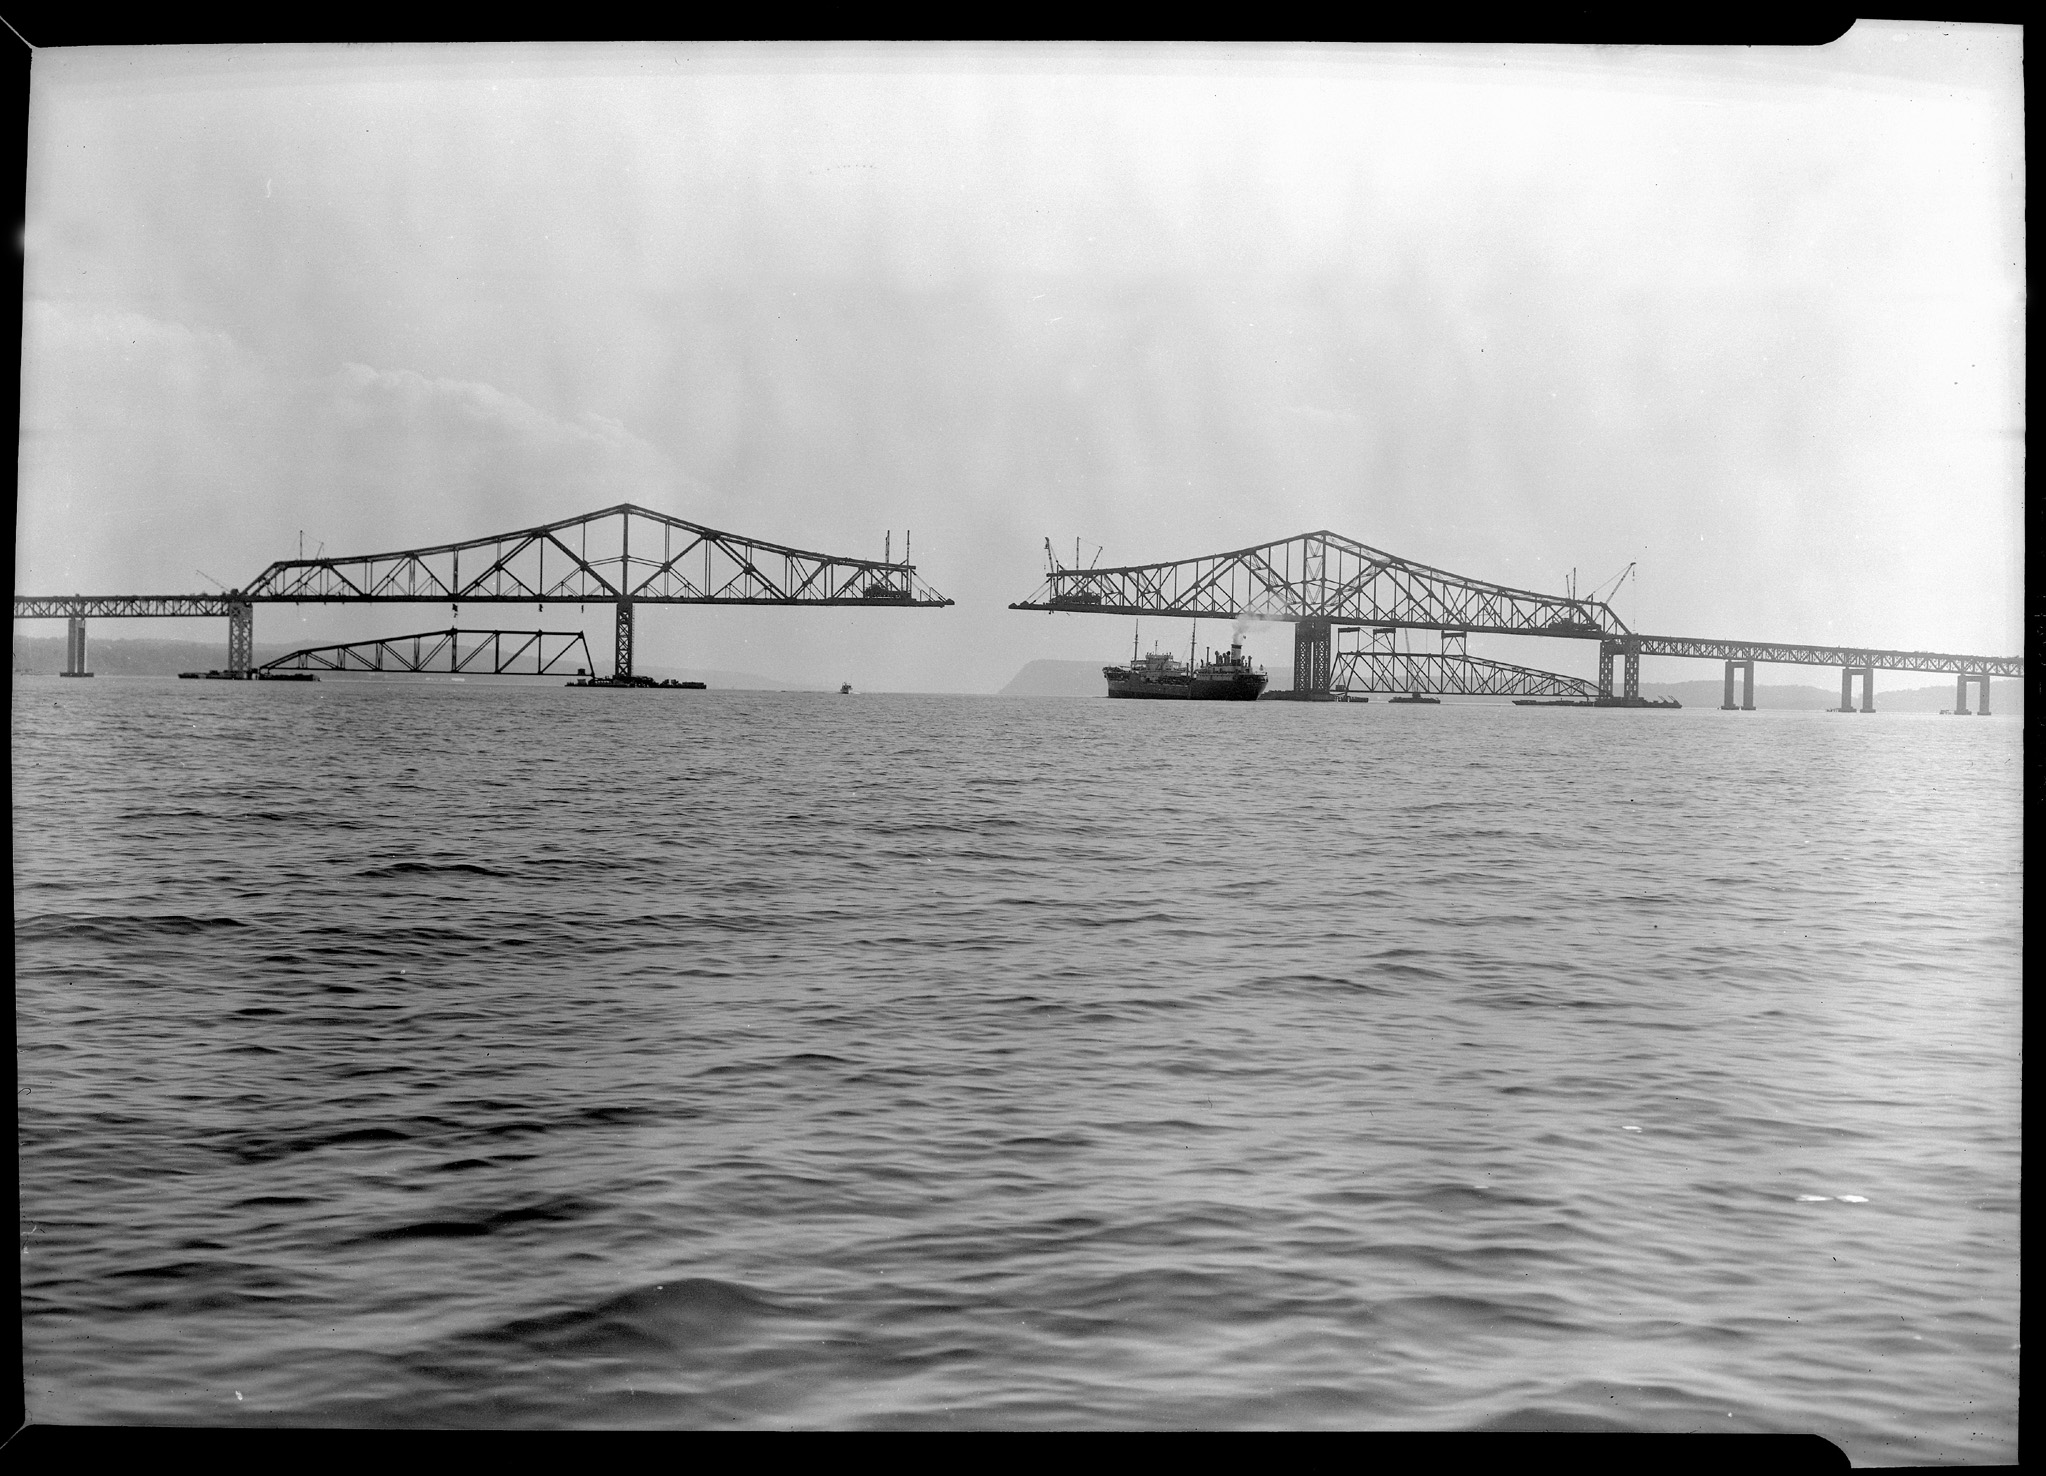 411d483521d7 The idea to build a bridge across one of the widest points in the Hudson  River began as early as 1905 with a bridge (railroad) Piermont to Hastings.